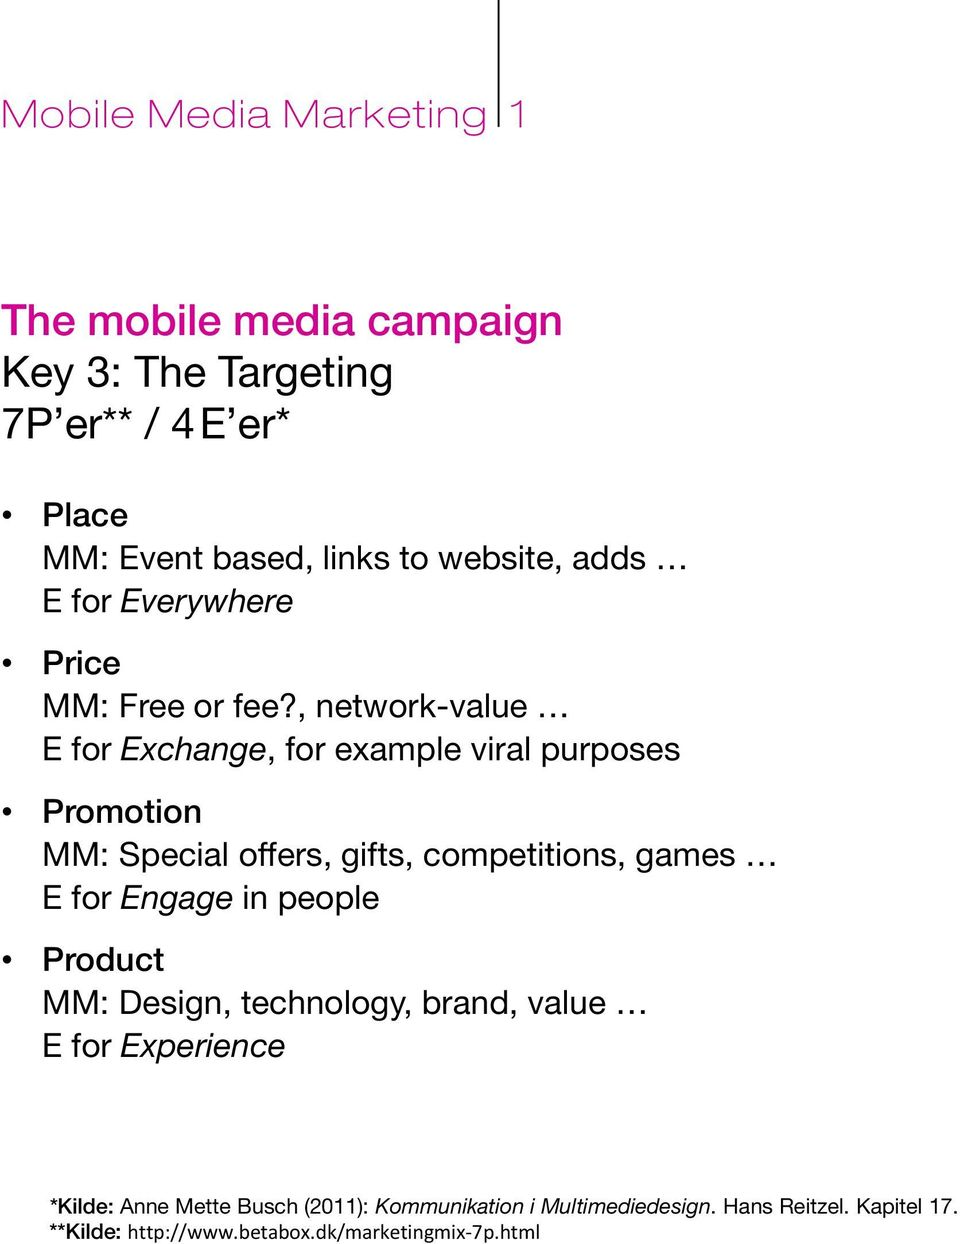 , network-value E for Exchange, for example viral purposes Promotion MM: Special offers, gifts, competitions, games E for